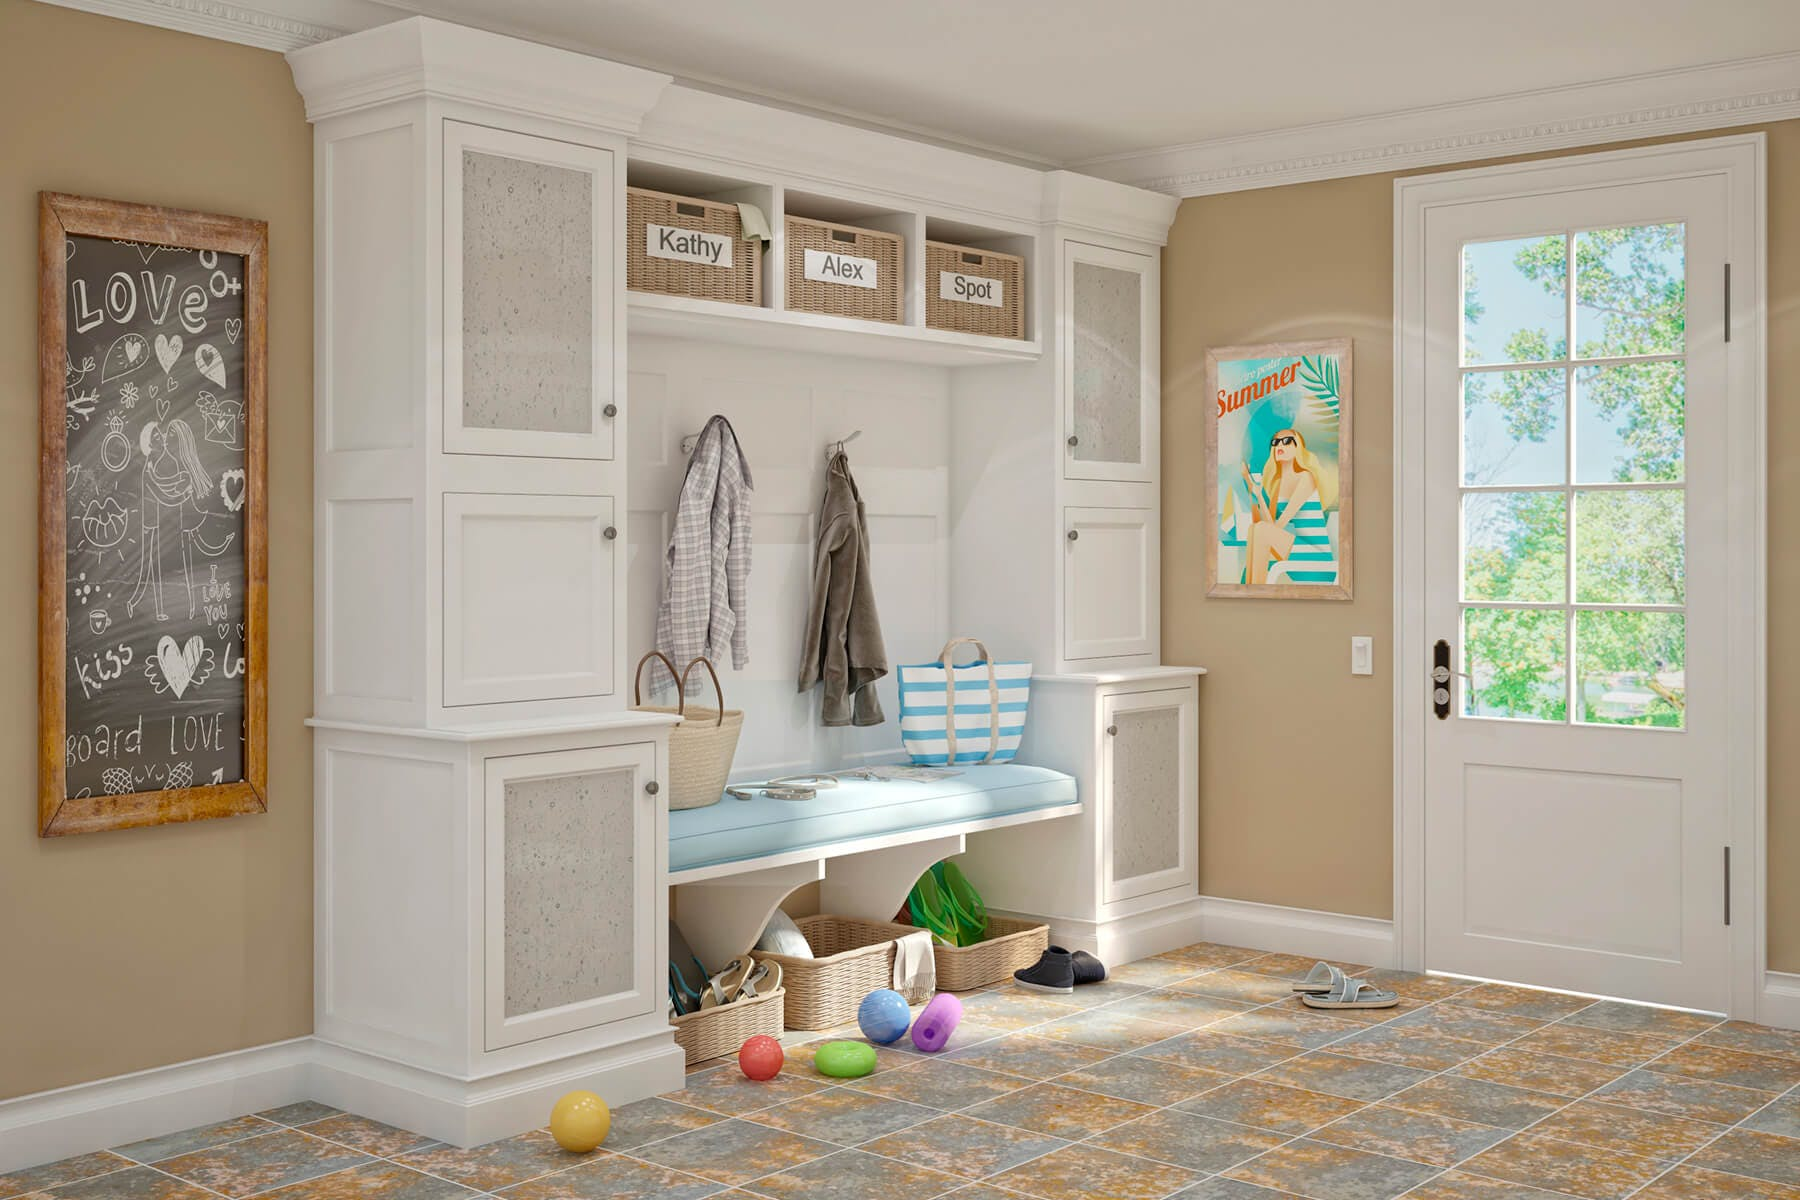 Painted Mudroom Room In Entry 3